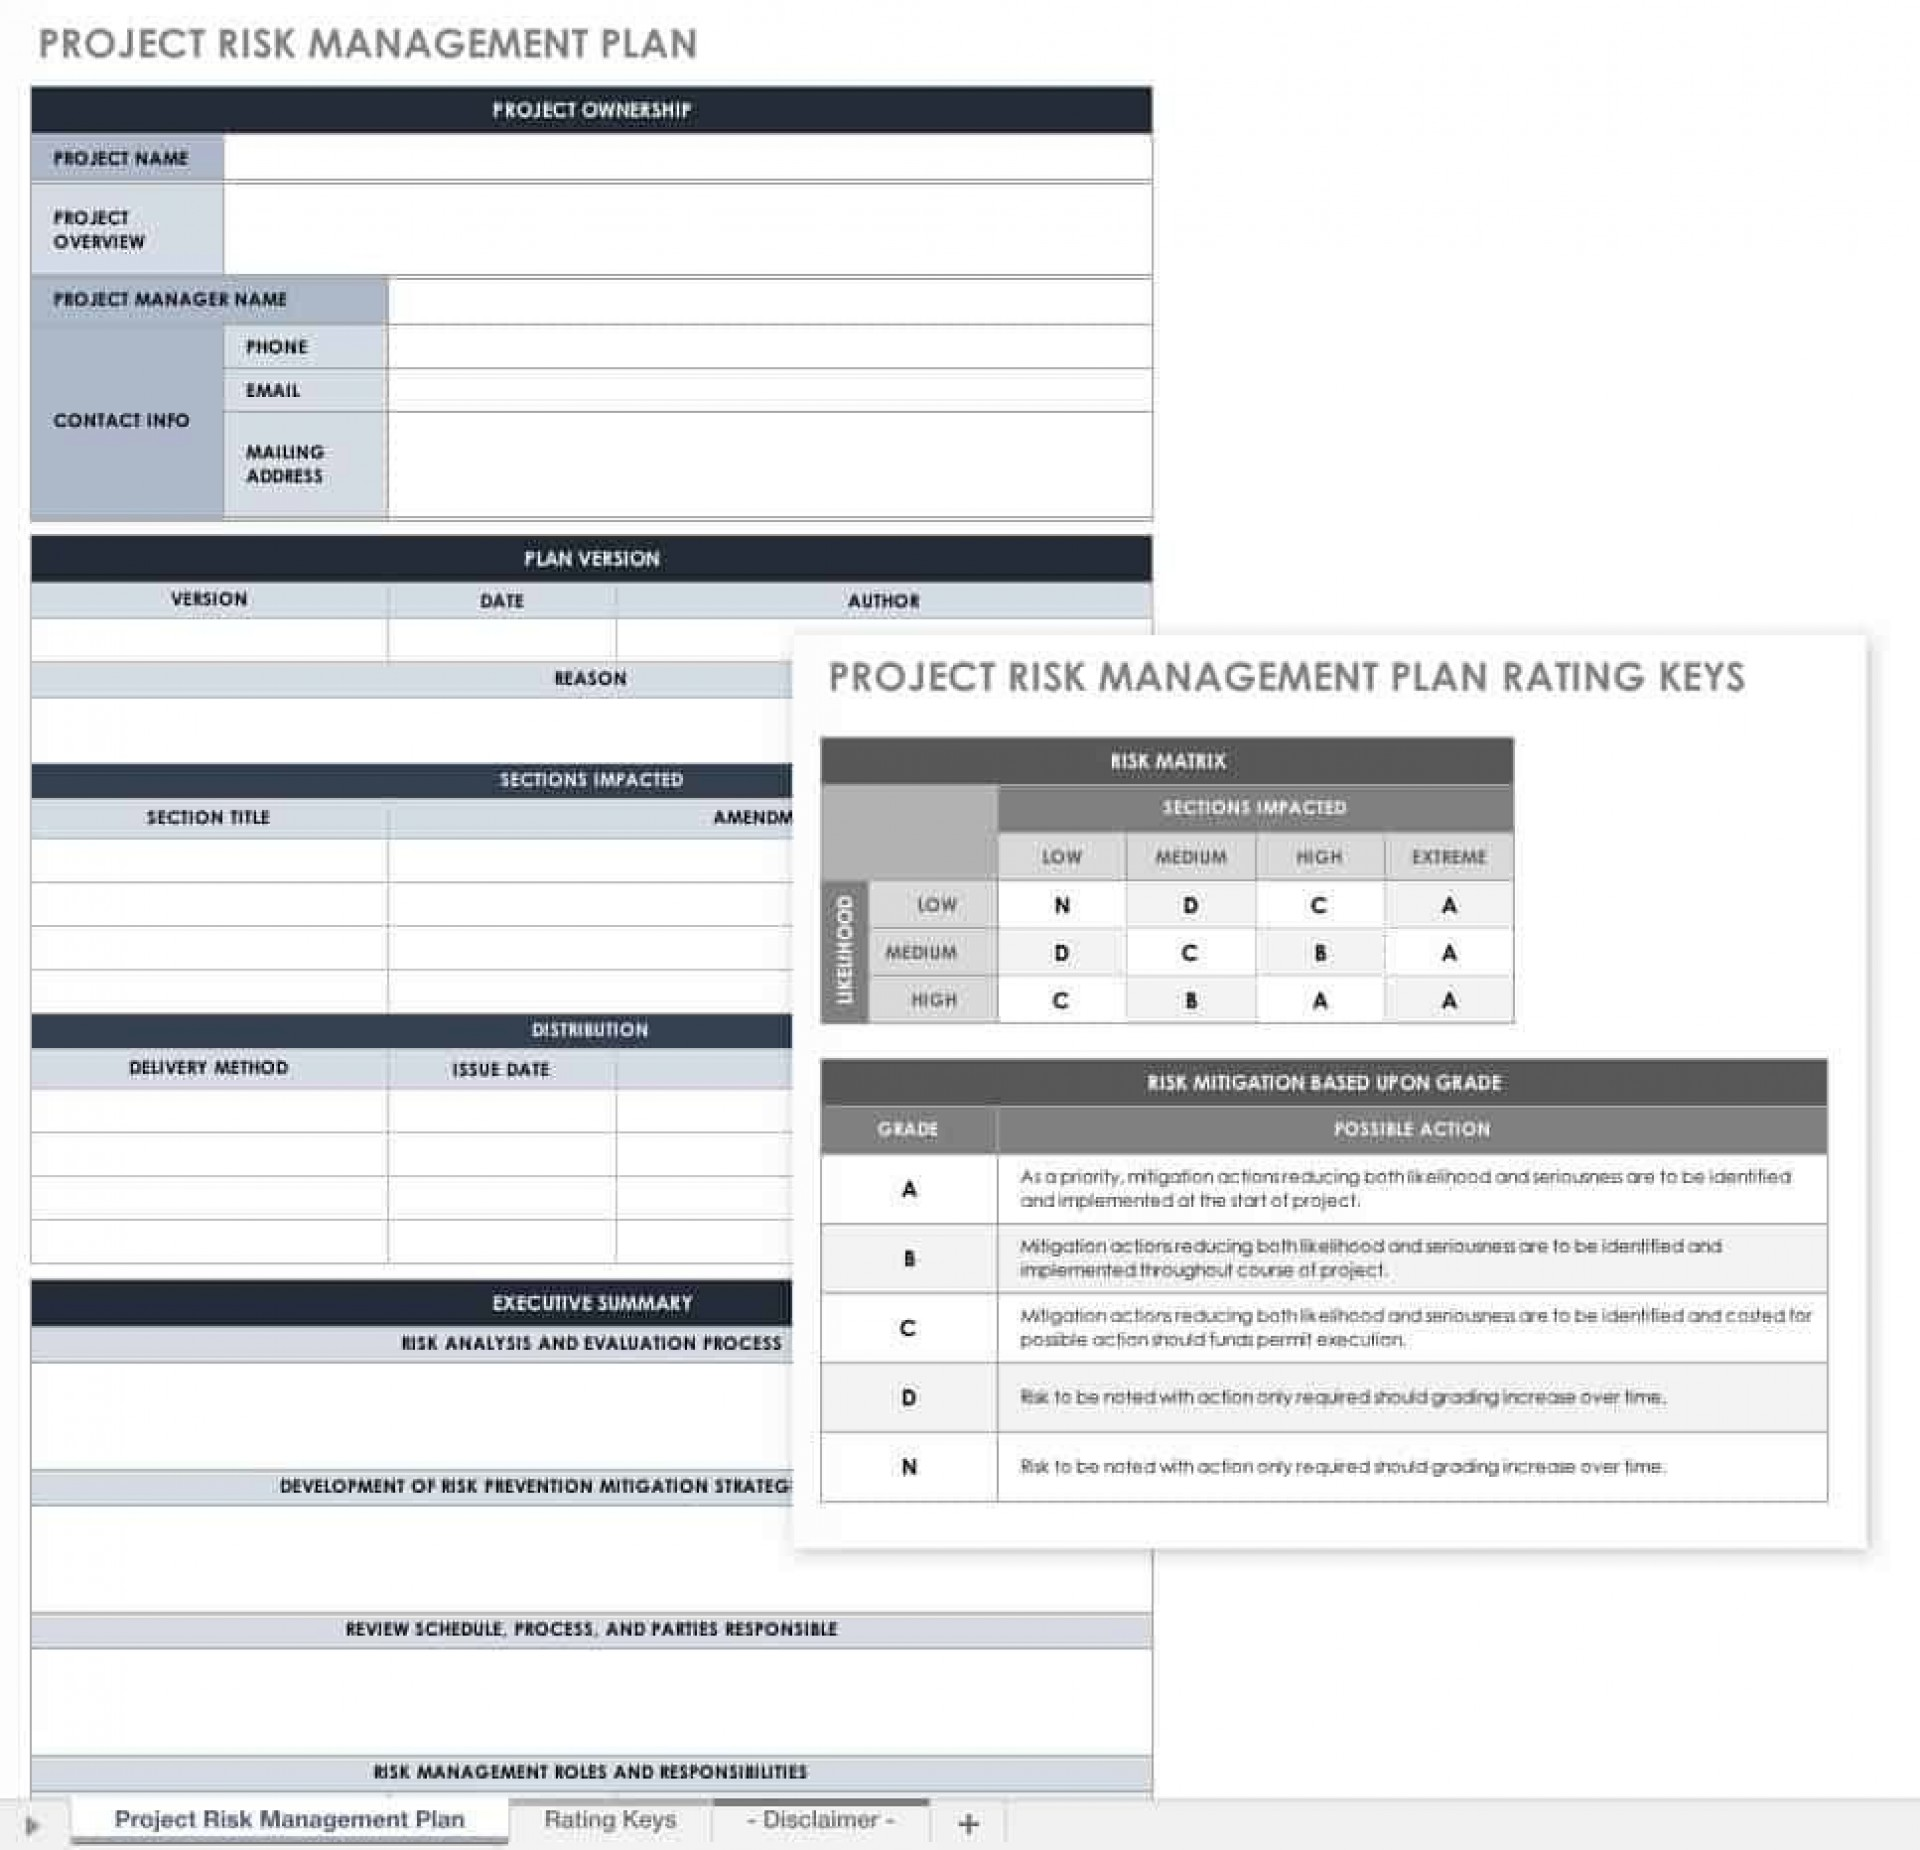 005 Incredible Construction Project Management Plan Template Word Sample 1920